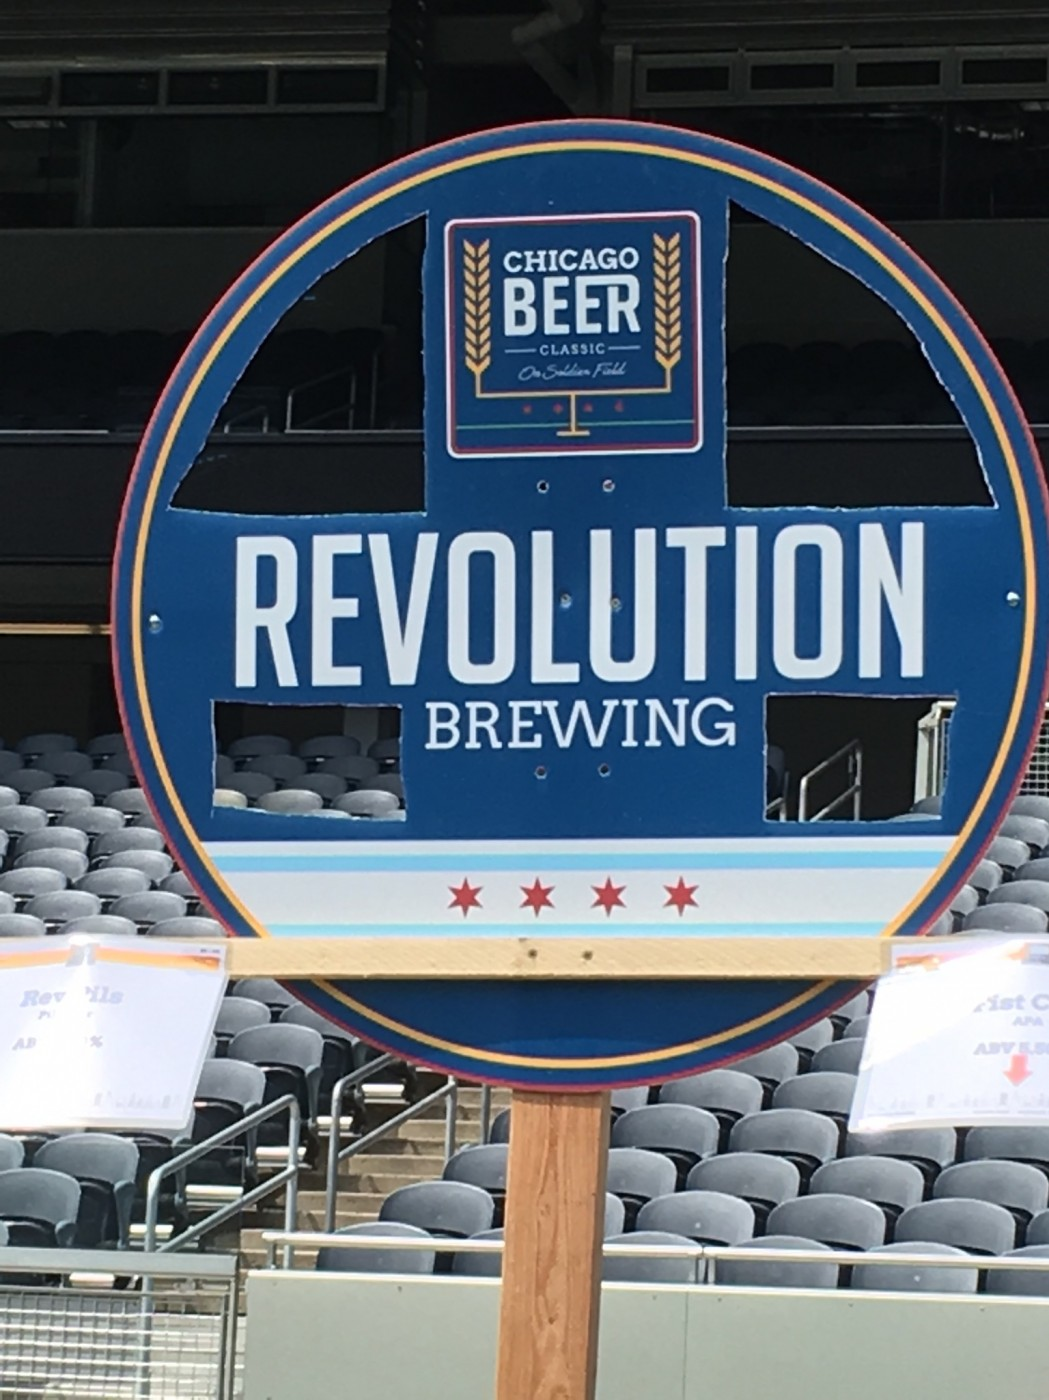 Breweries had to get creative to make sure their signs didn't blow over in the strong winds.